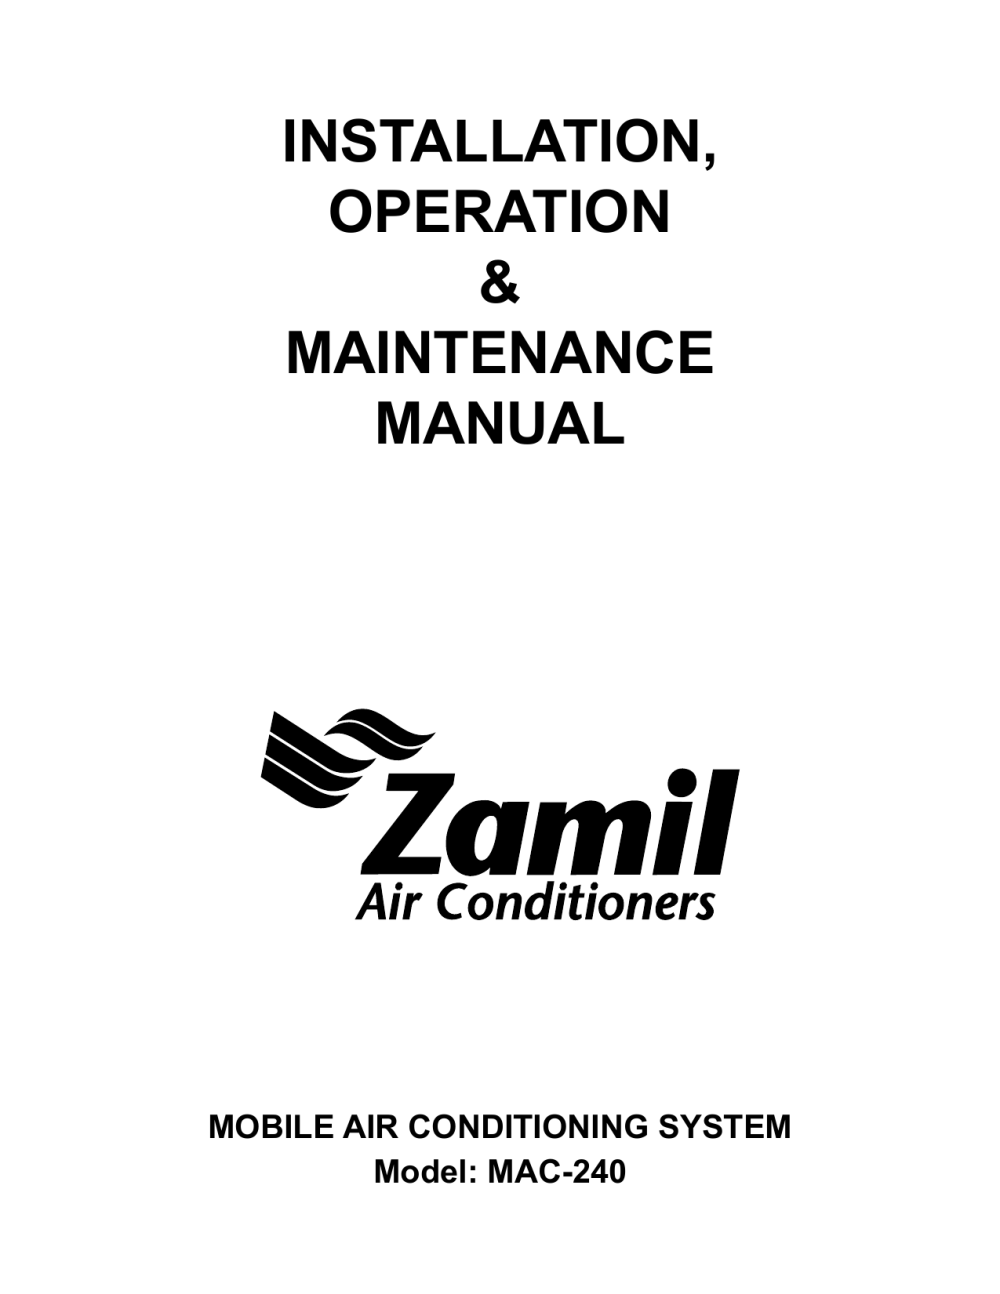 medium resolution of pds iom zamil air conditioners